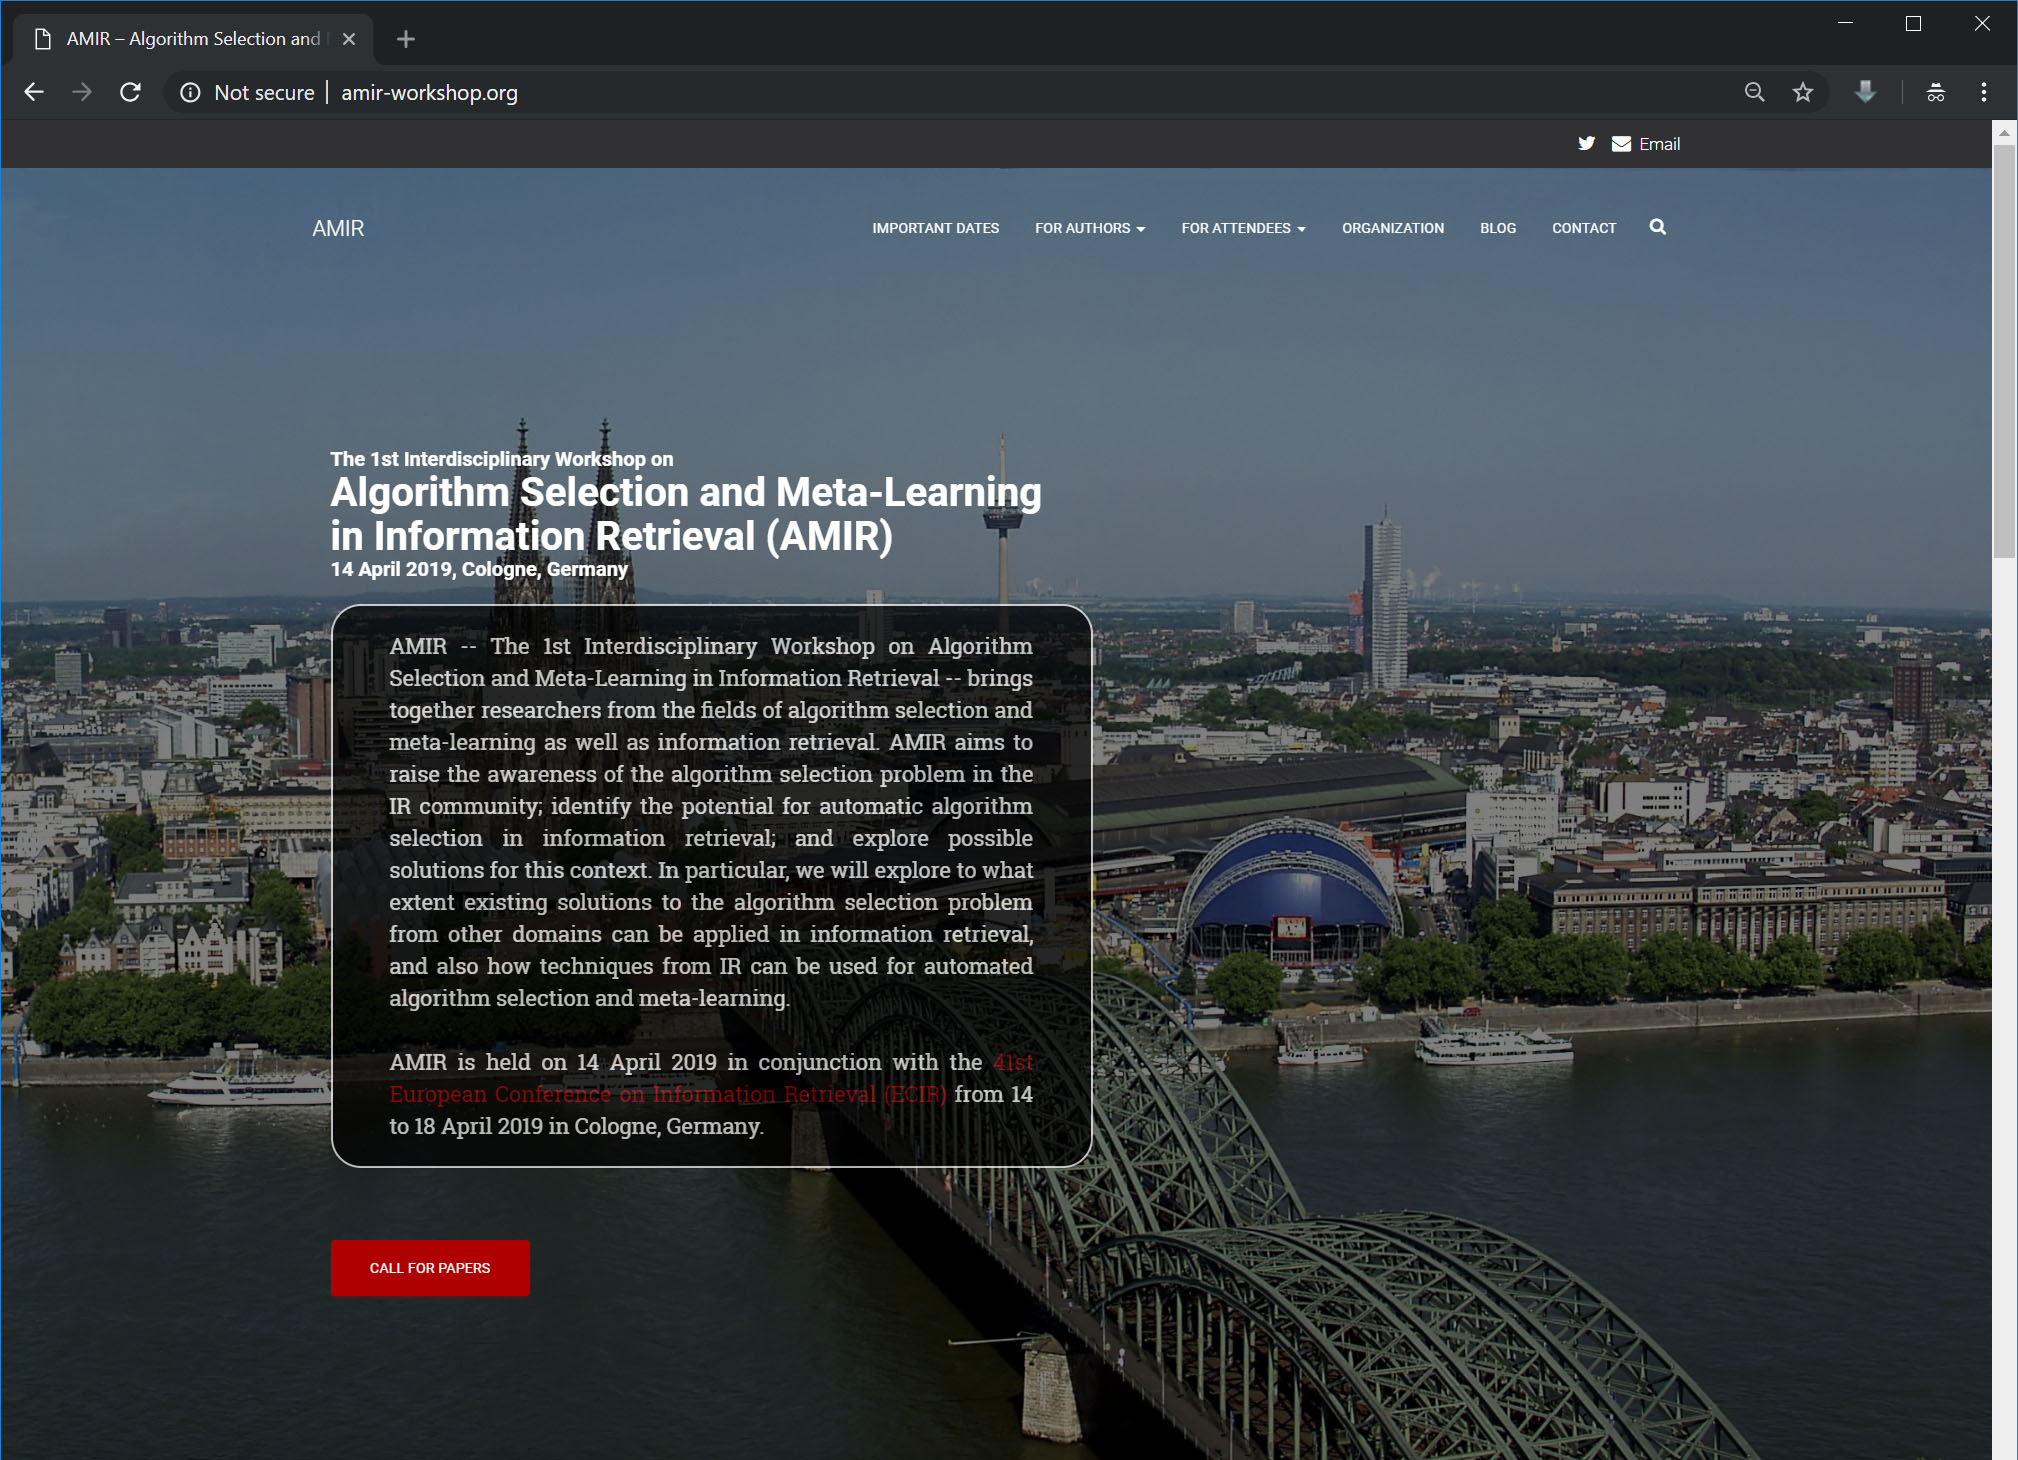 Screenshot of the Homepage of the 1st Interdisciplinary Workshop on Algorithm Selection and Meta-Learning in Information Retrieval (AMIR)